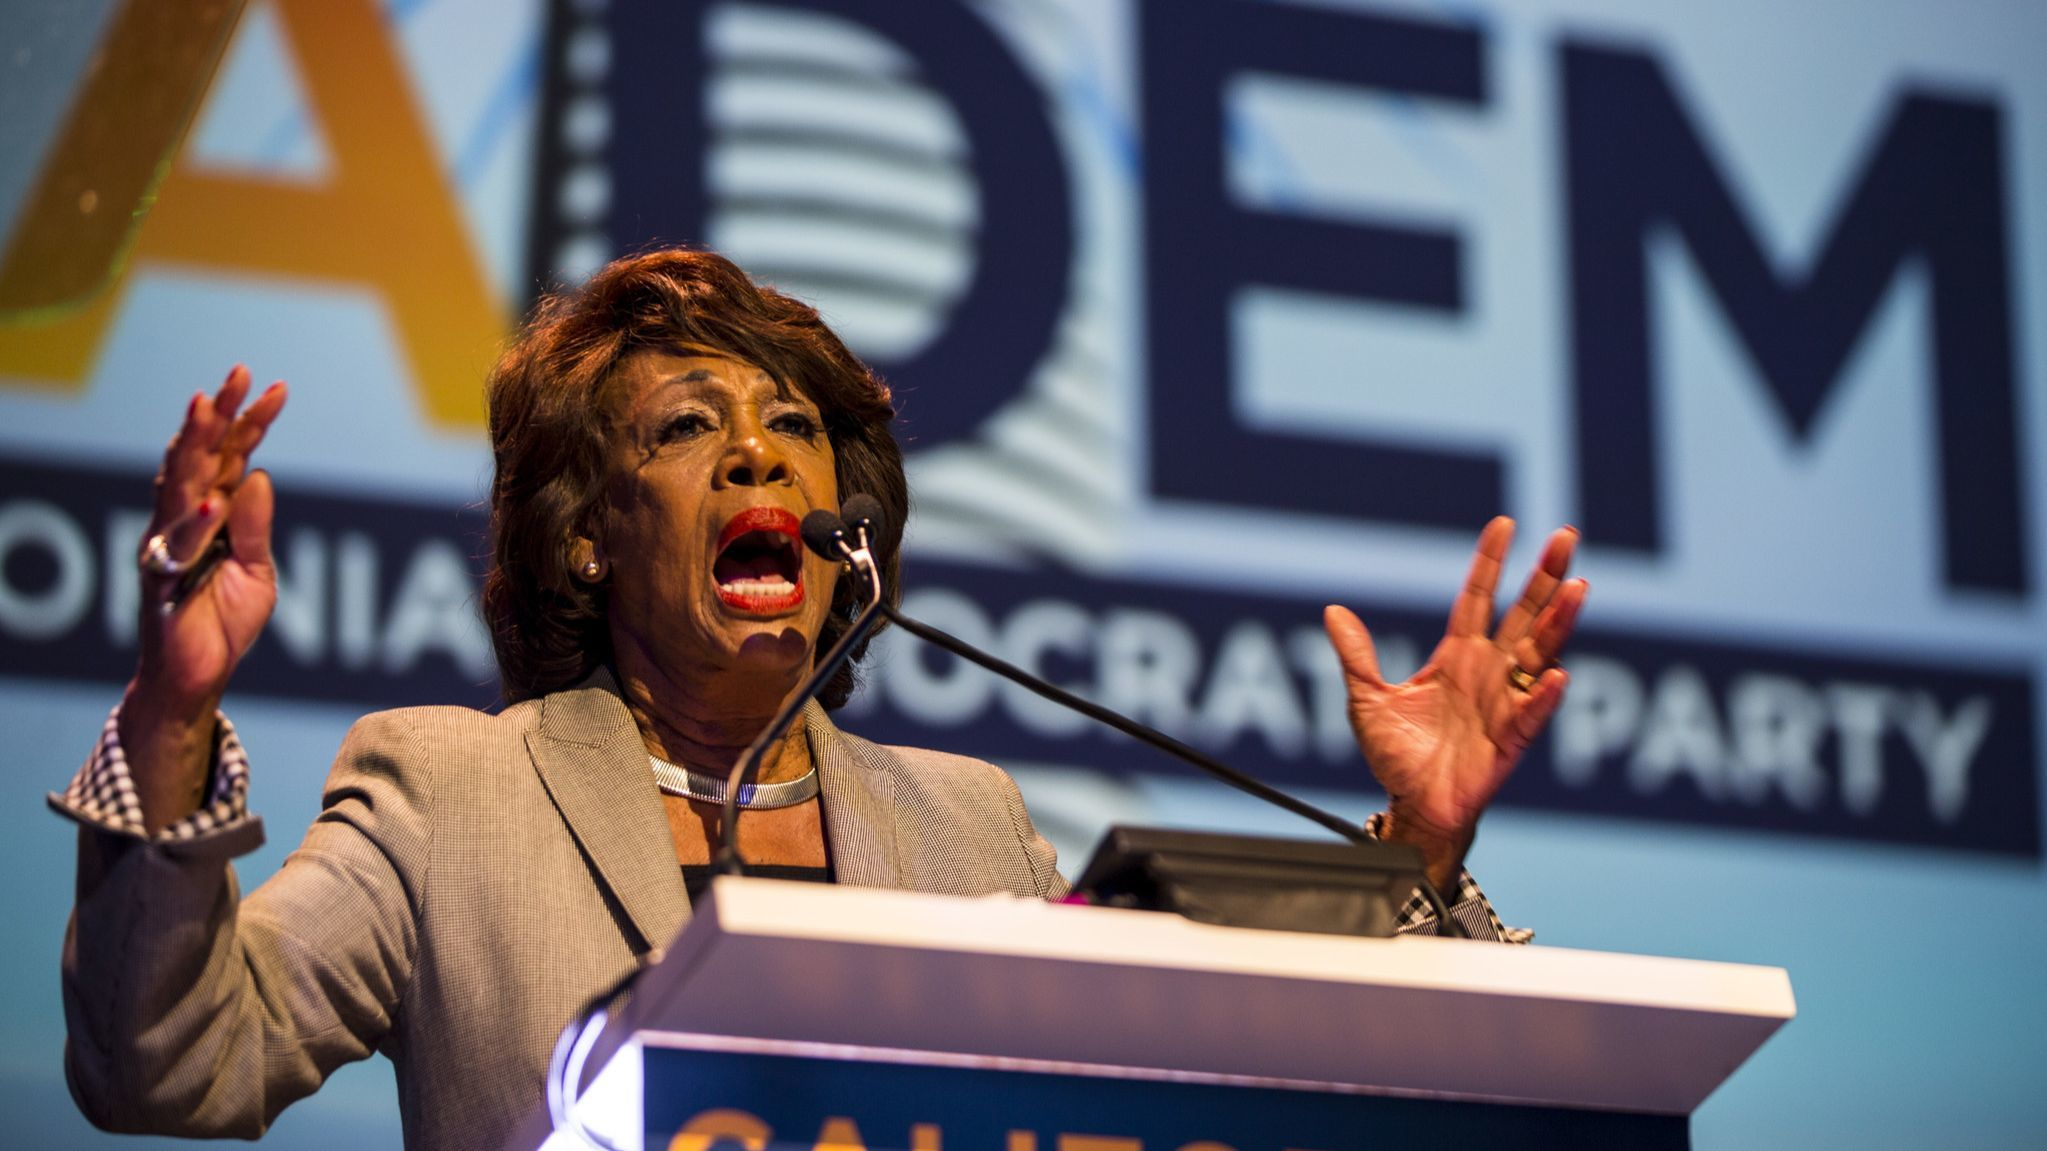 Maxine Waters says she's not scared, won't back down after explosive device mailed to her